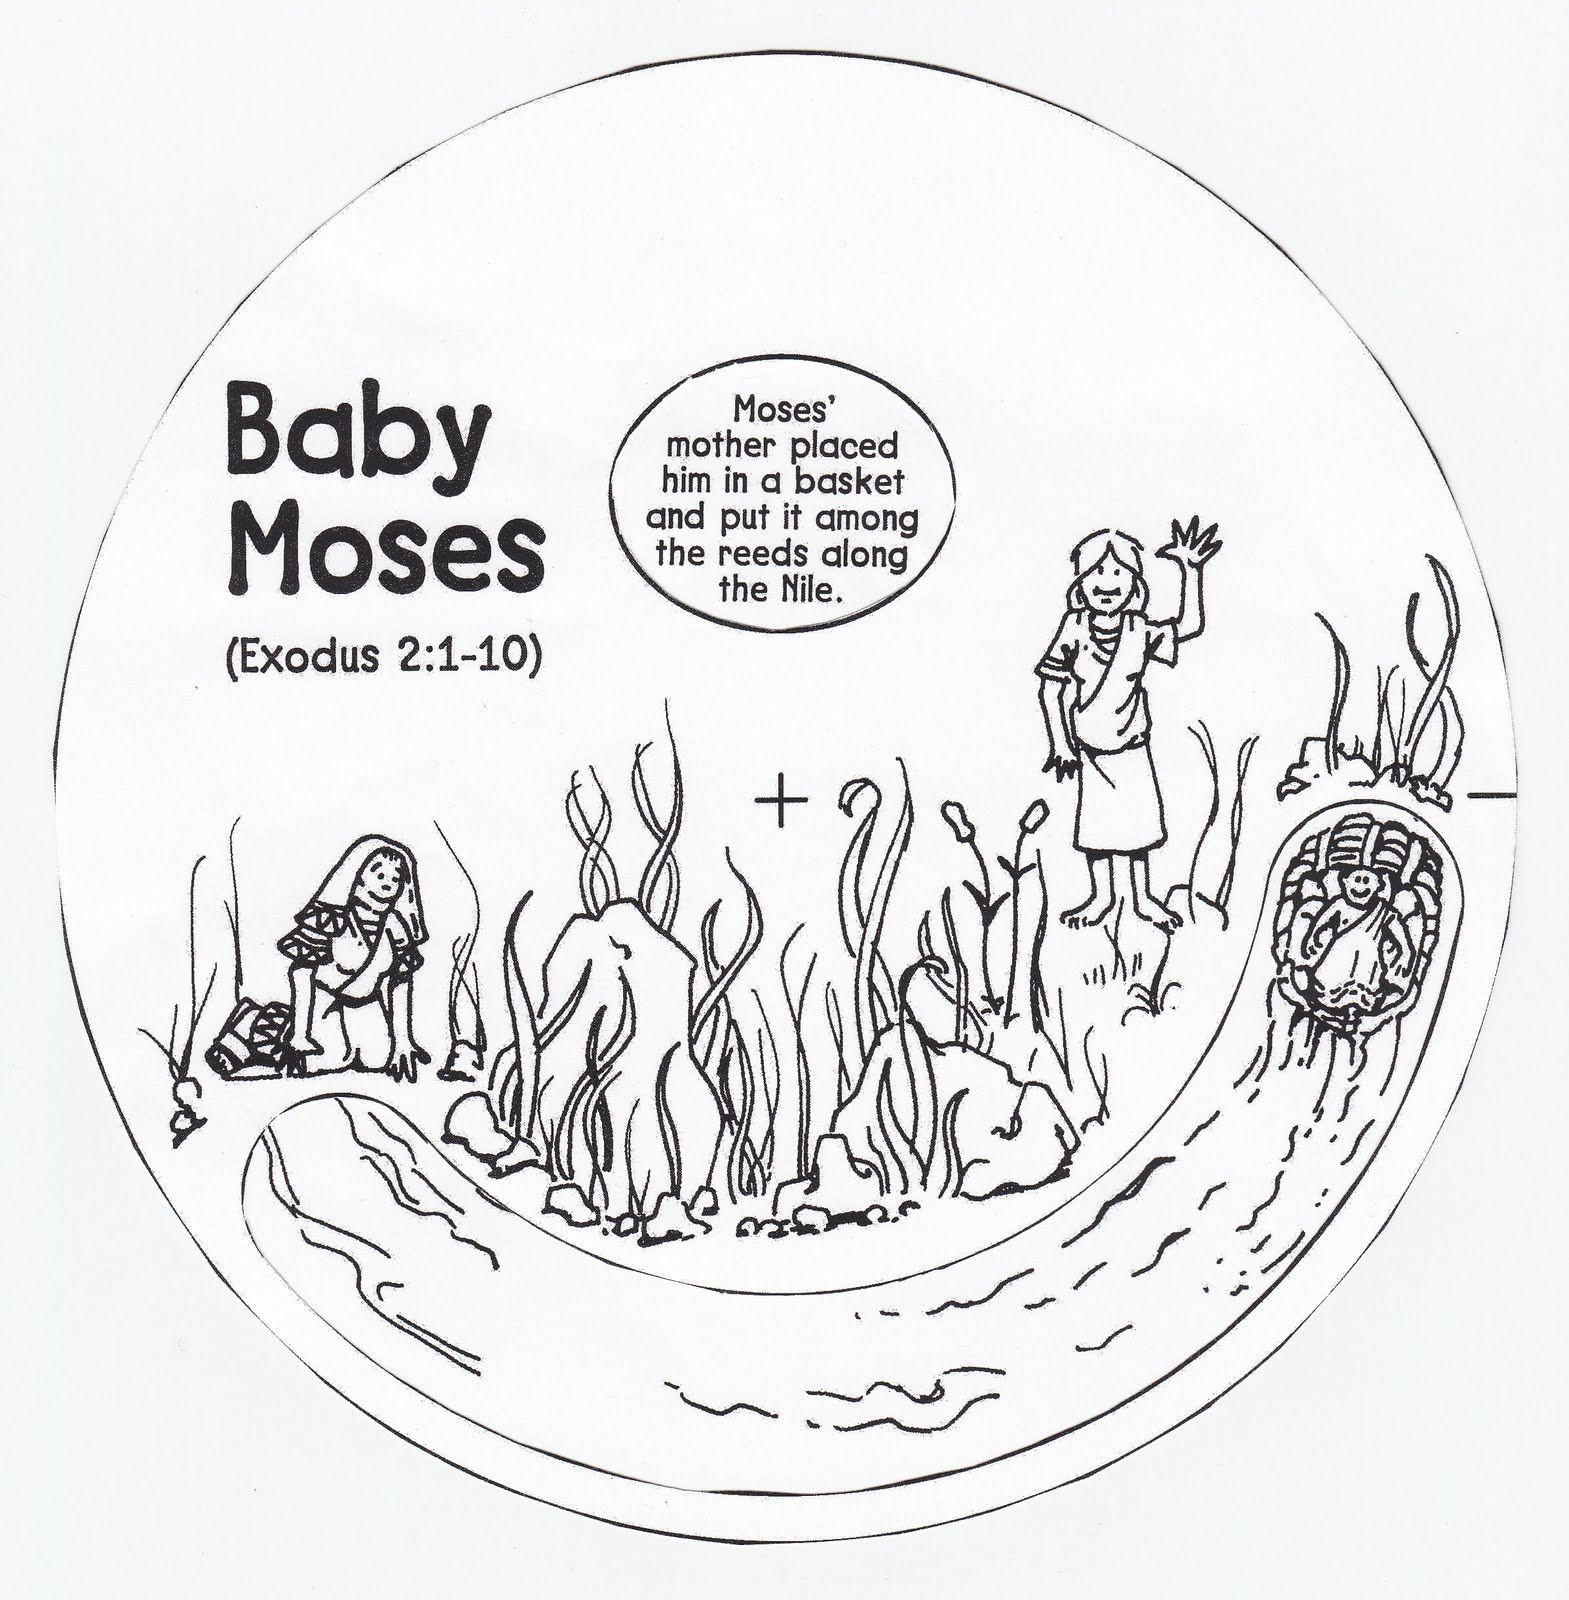 preschool crafts for baby moses - Google Search | Moses/Ten ...